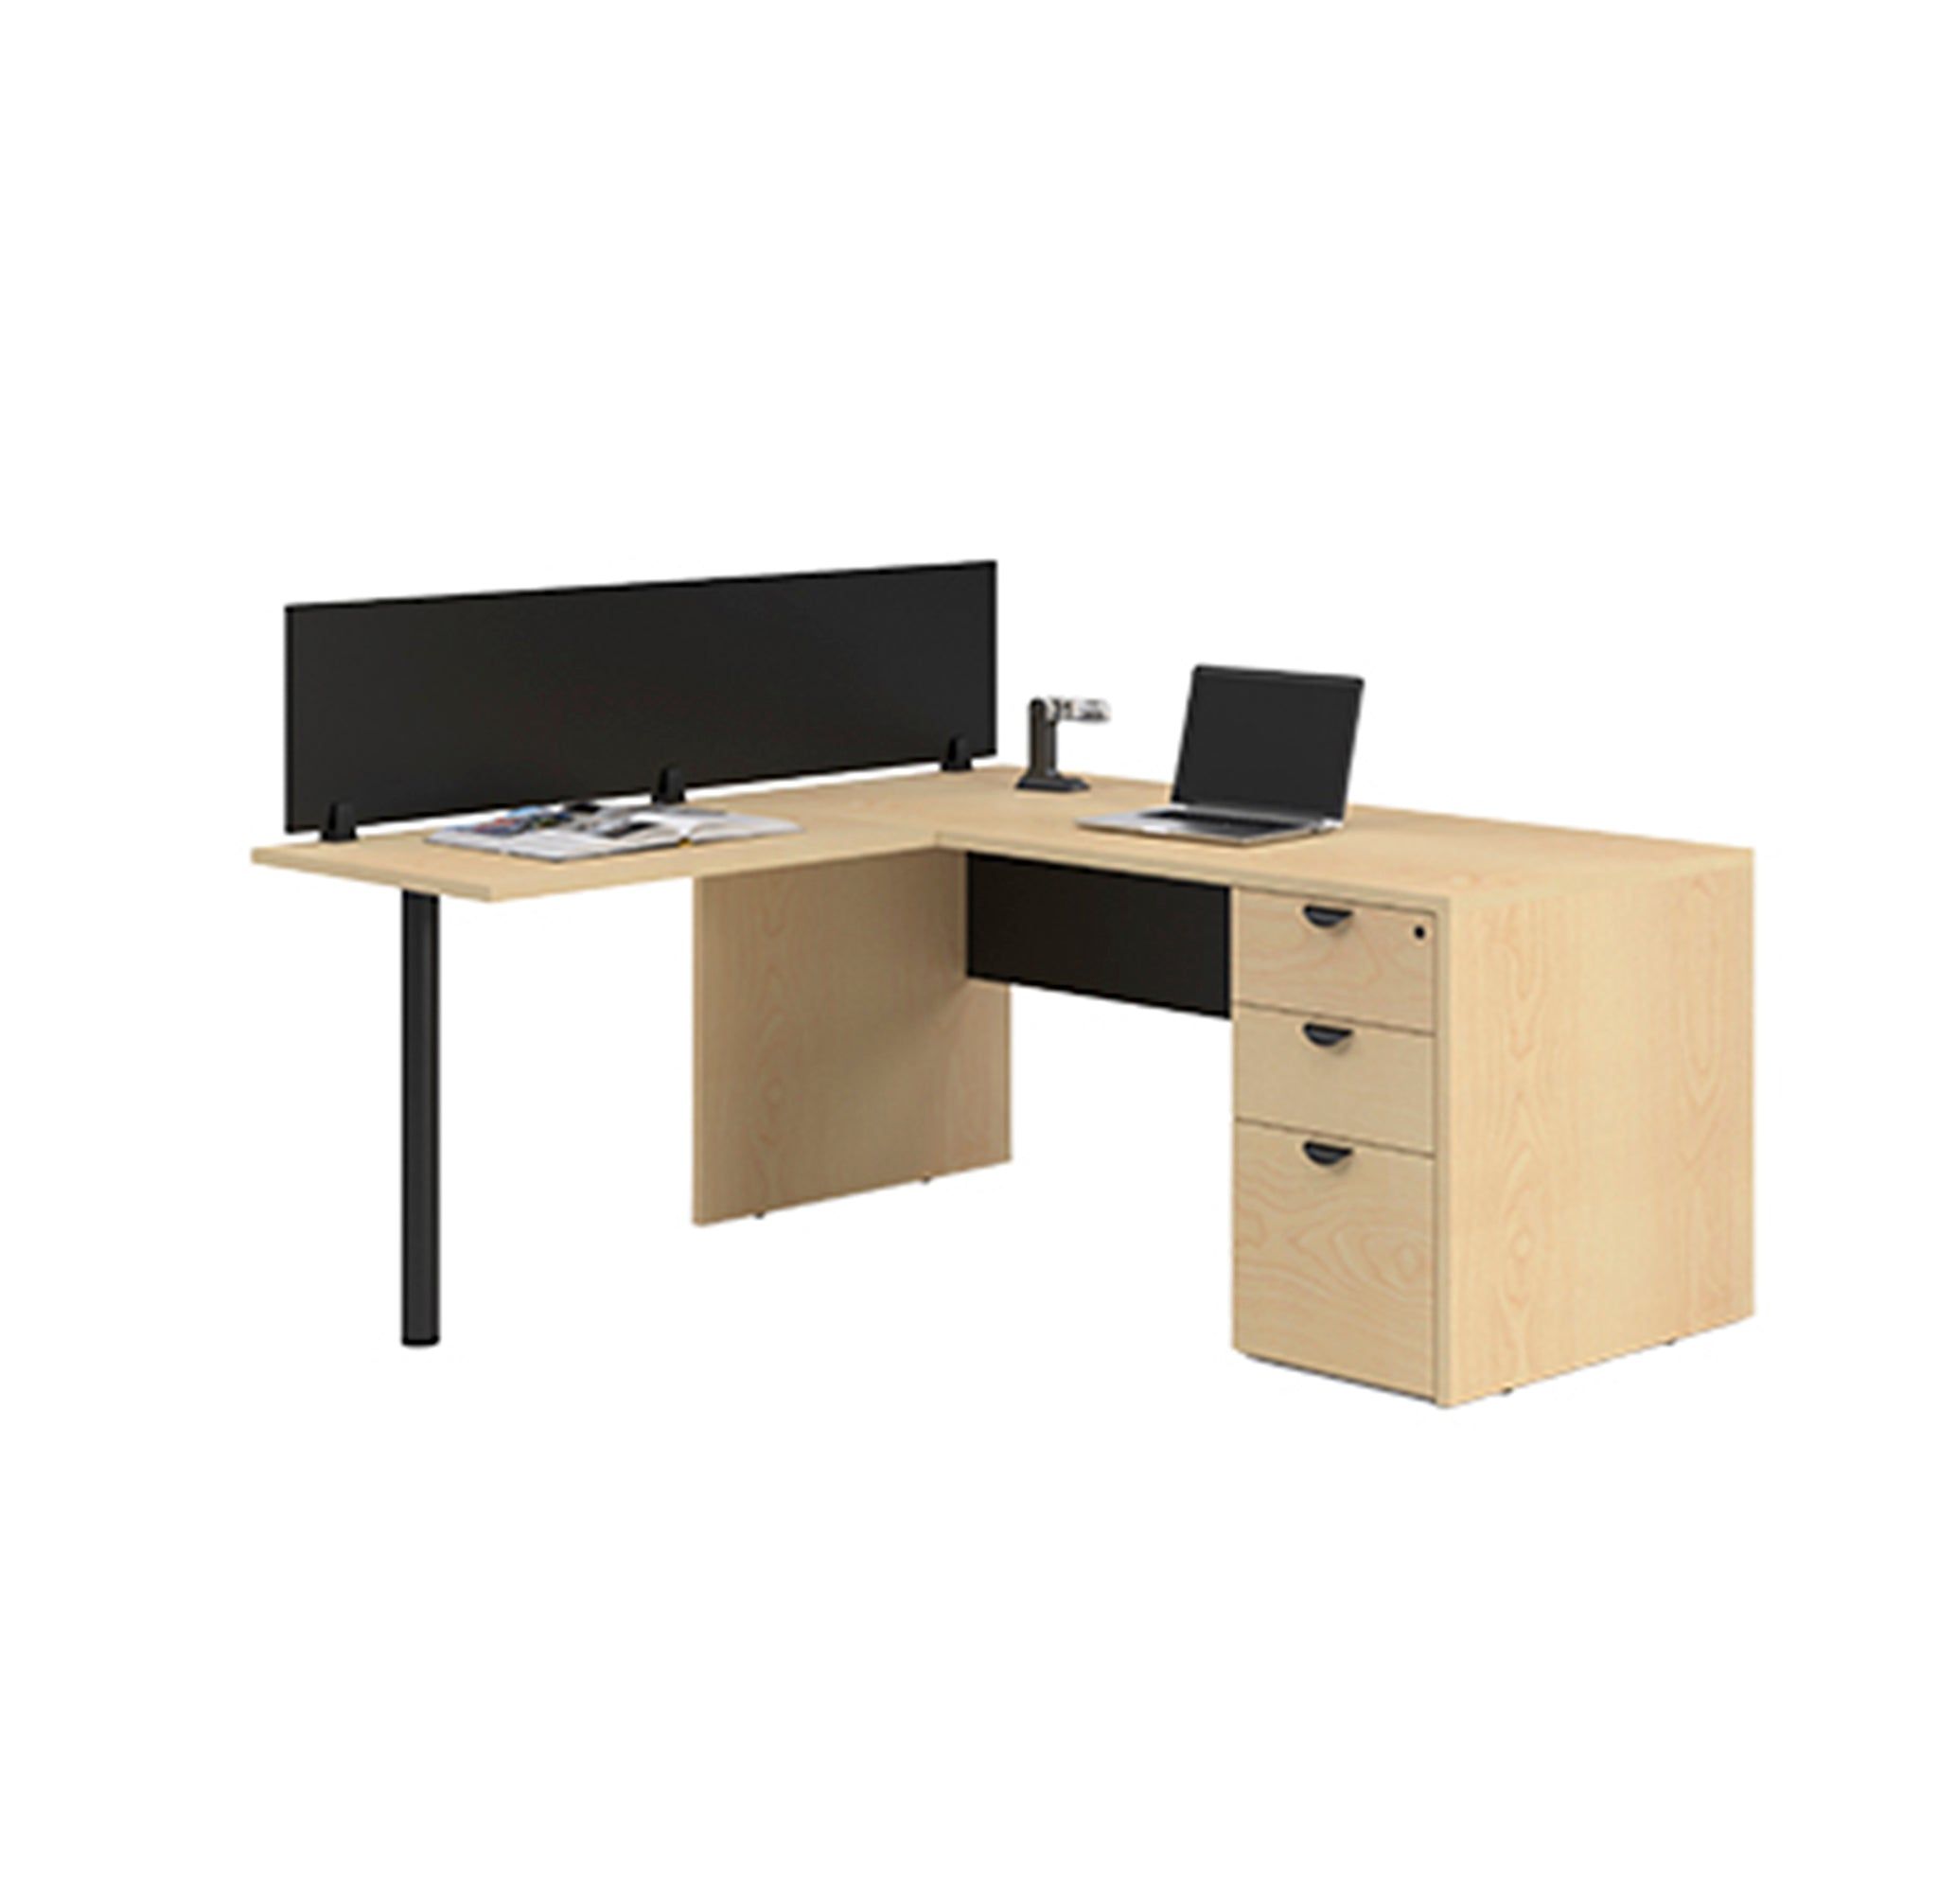 Laminate Desk Mounted Privacy Panel